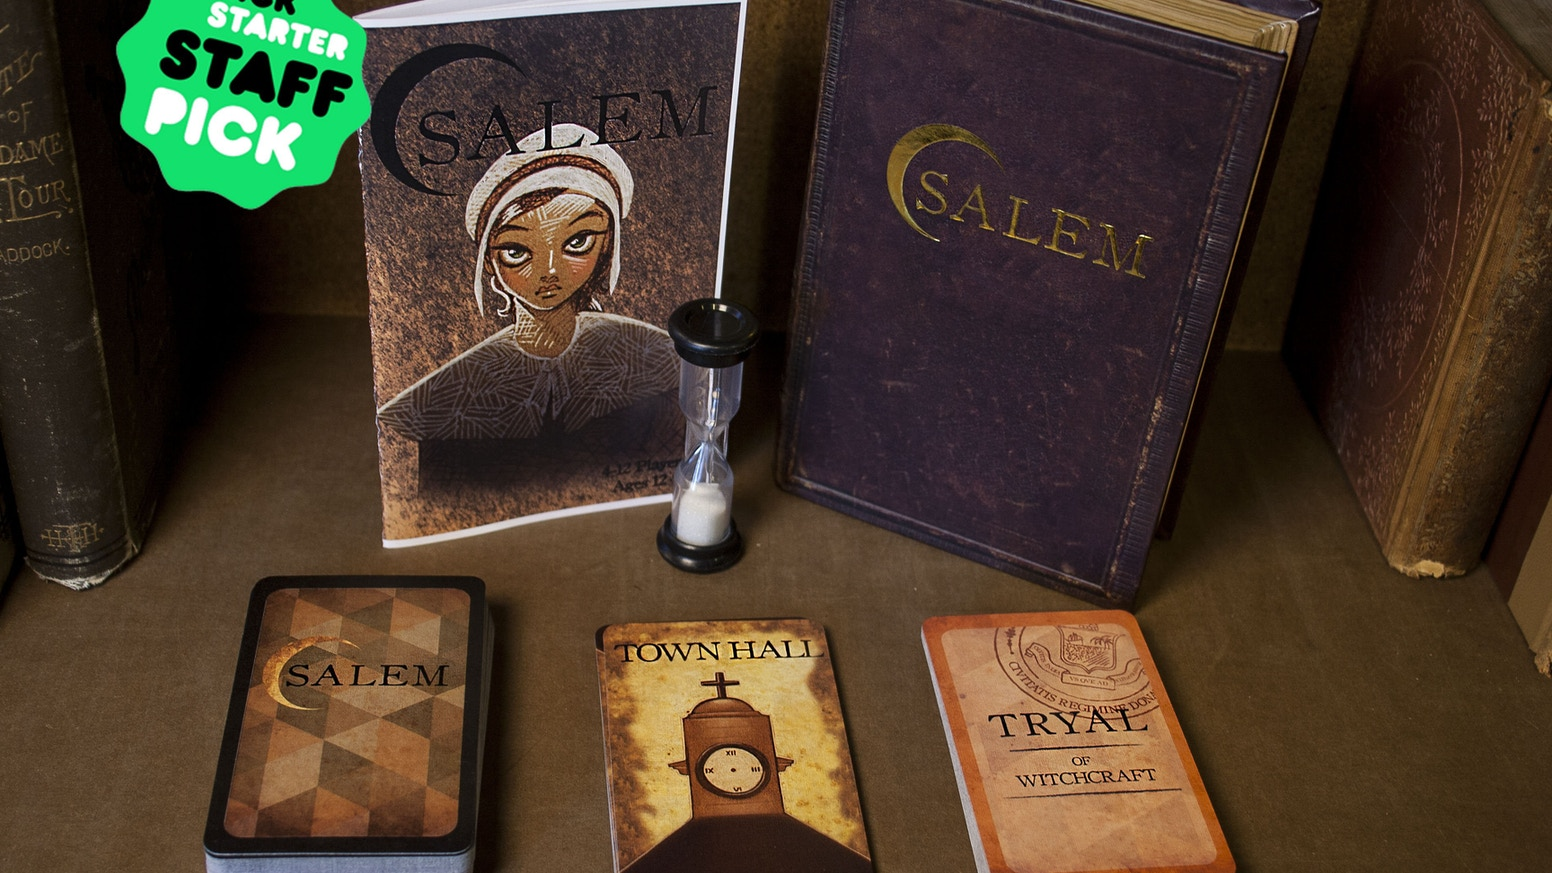 Accuse and defend your fellow townsfolk as you hunt down the witches of Salem. Act fast, before conspiracy turns you against your own. Successfully funded! Available at www.facadegames.com.